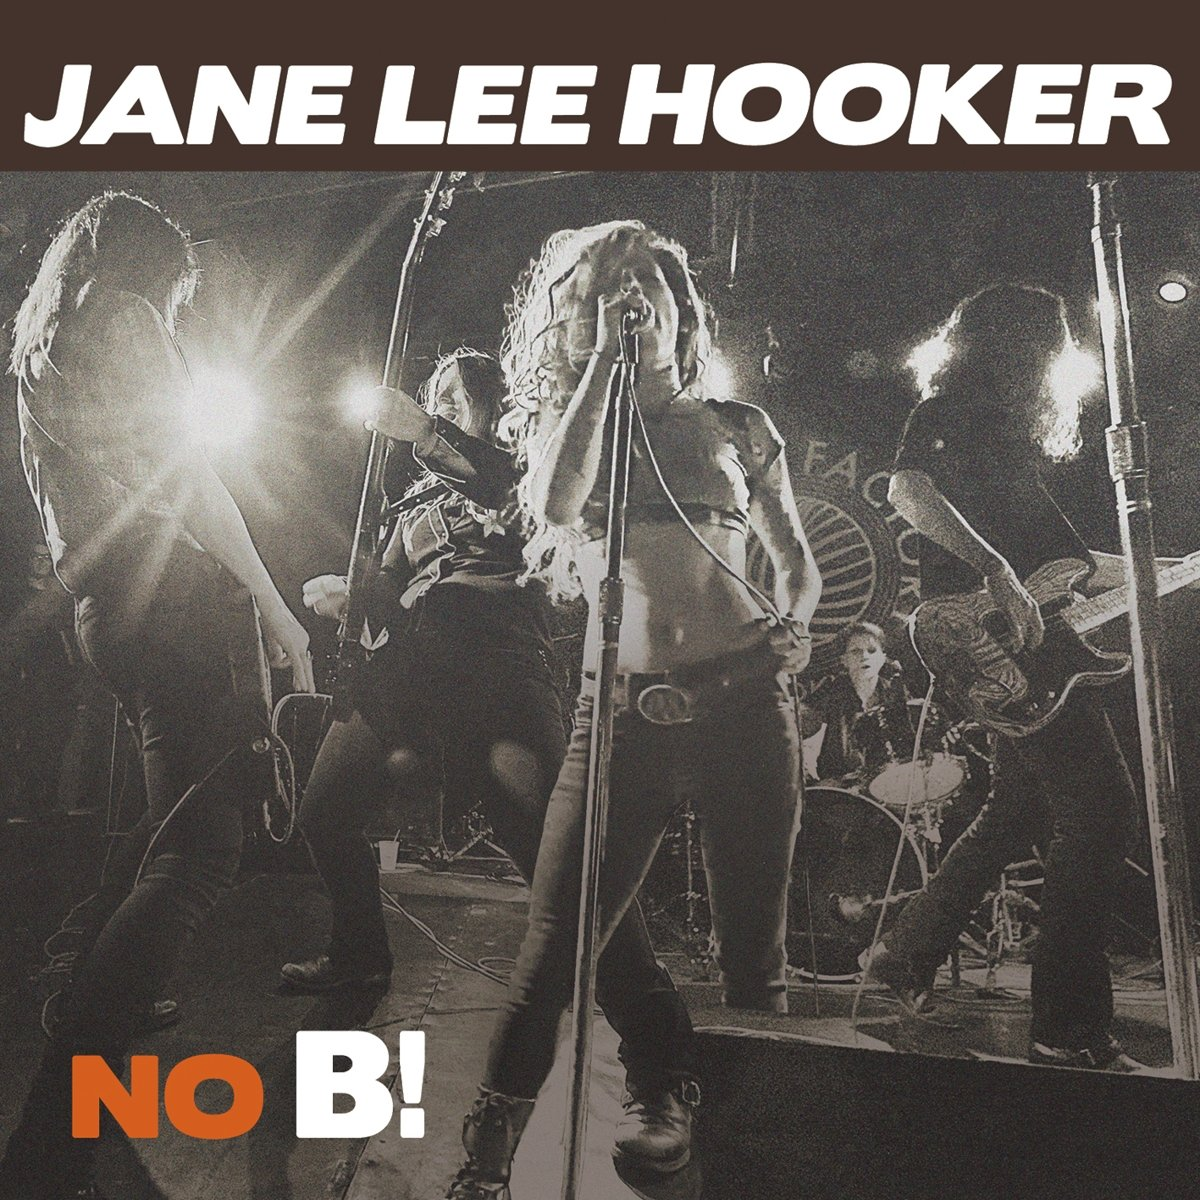 Jane Lee Hooker - No B! 81WXTwDKP1L._SL1200_